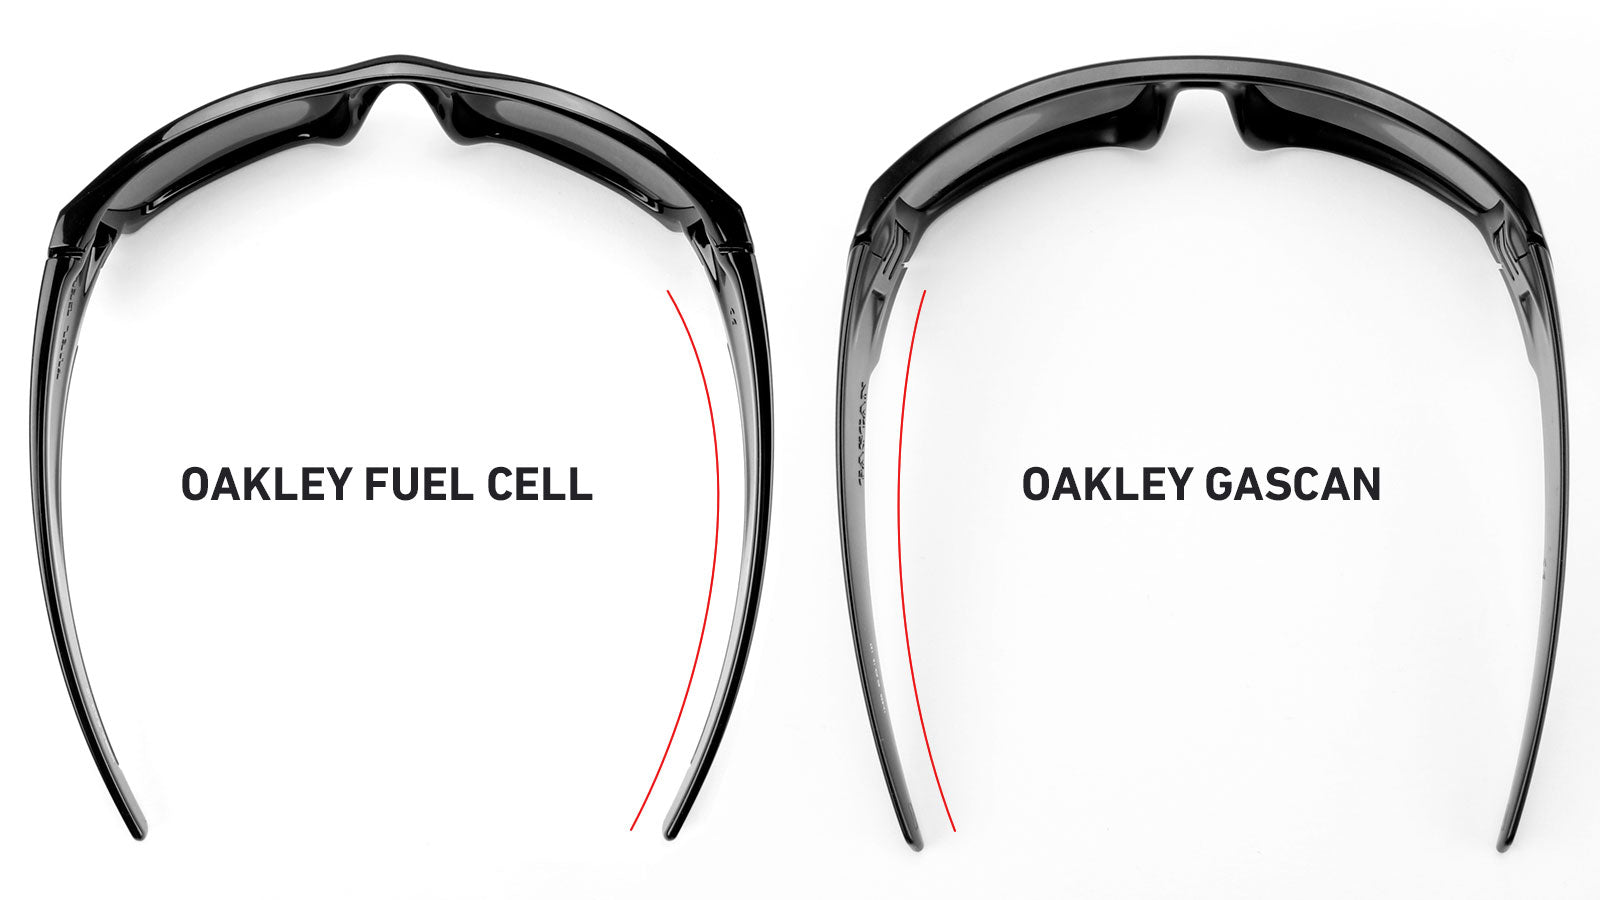 Oakley Fuel Cell and Oakley Gascan curved arms